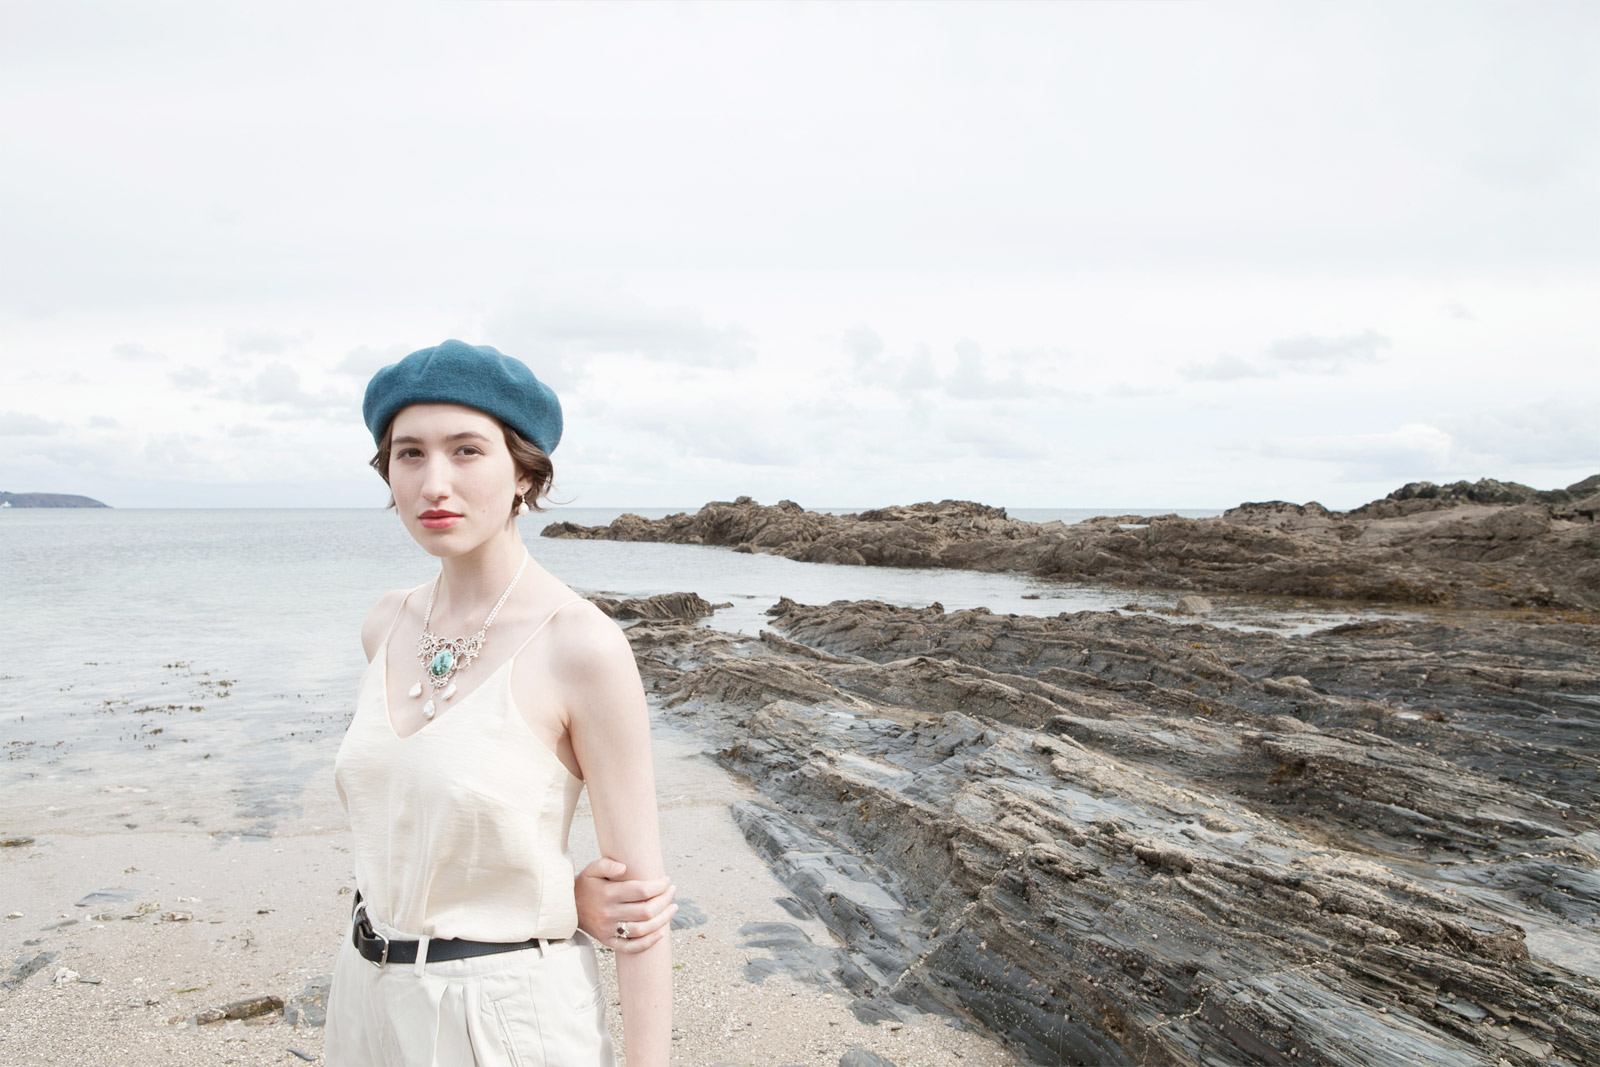 Campaign images for Maya Ullman Jewellery